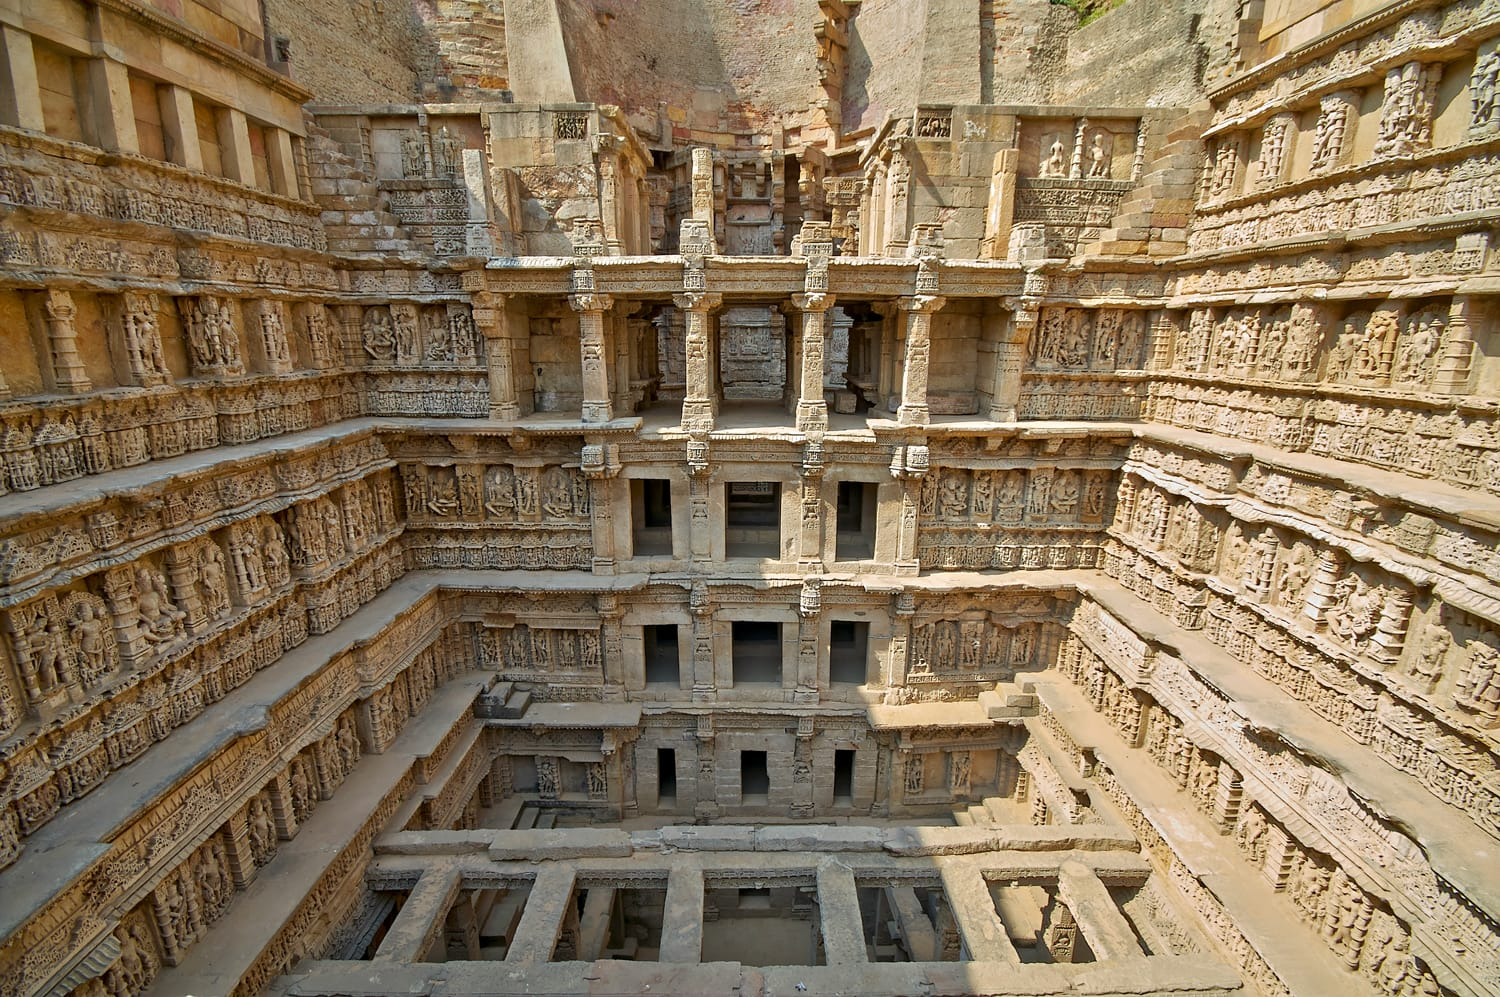 Ornate stone carved walls lining the 11th century Rav-Ki-Vav stepwell at Patan, Gujarat, India. Selected as a UNESCO world Heritage Site